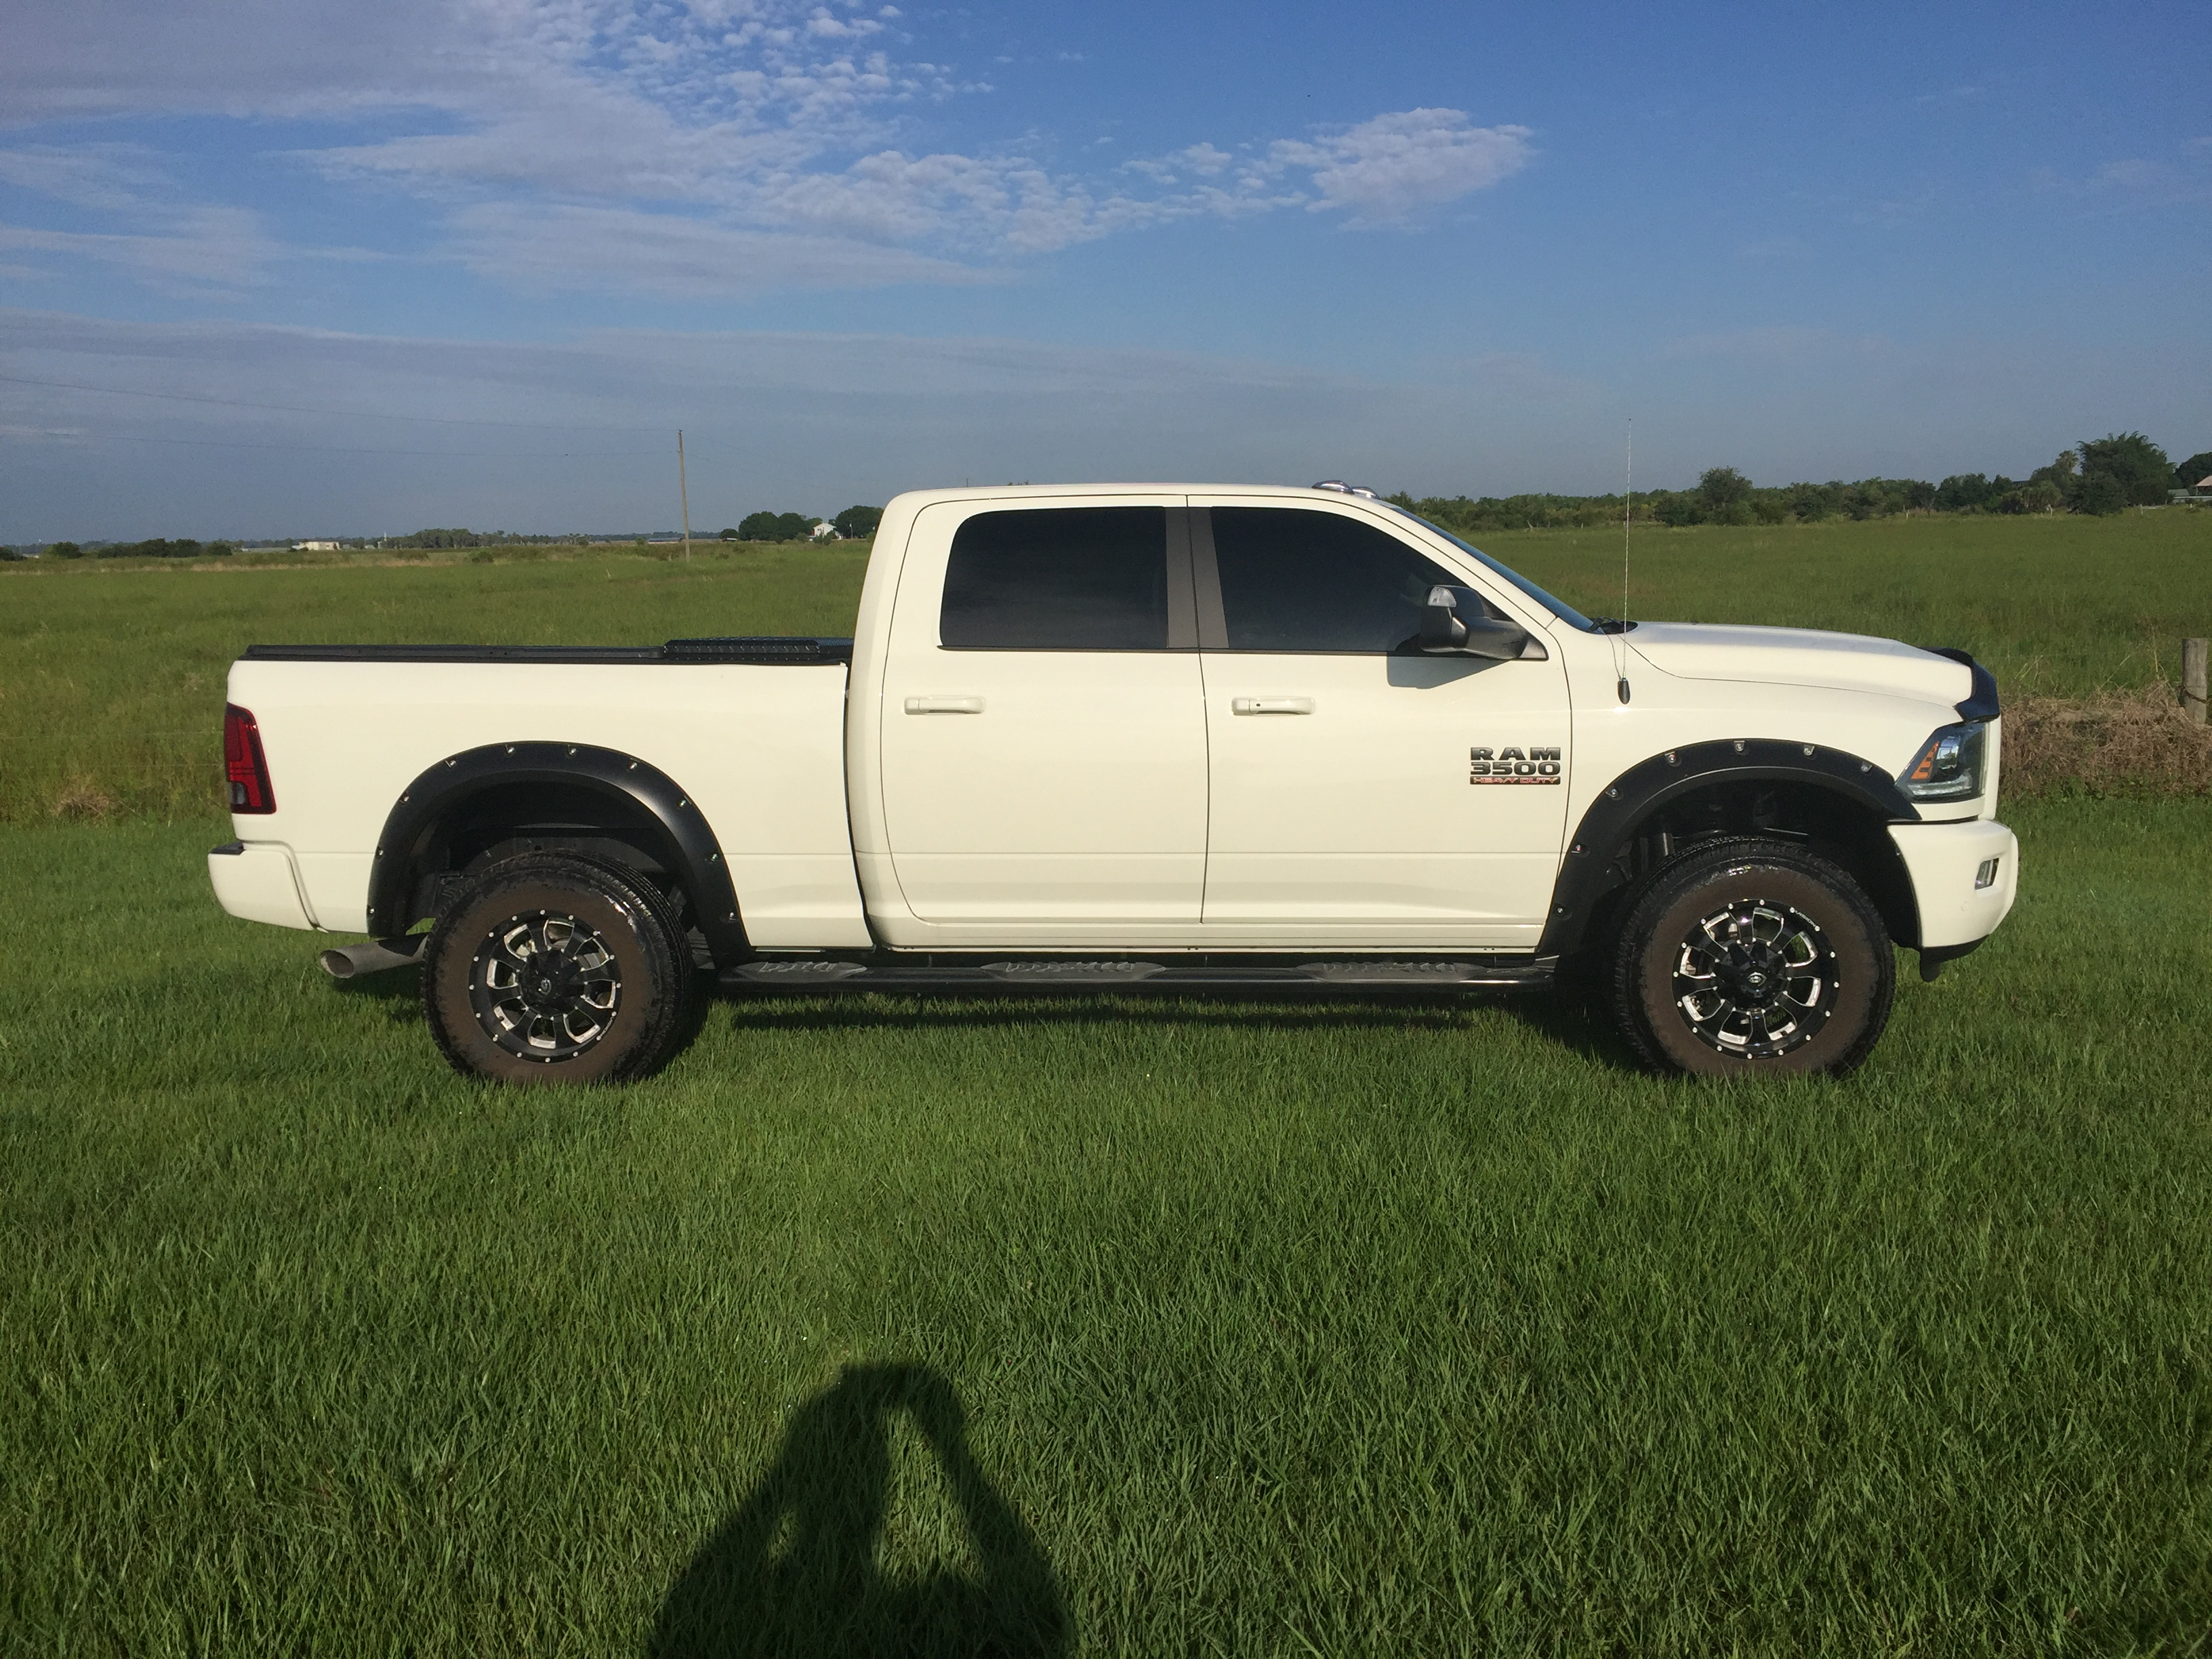 2015 ram laramie ed traded for 2016 ram tradesman ctd image jpeg